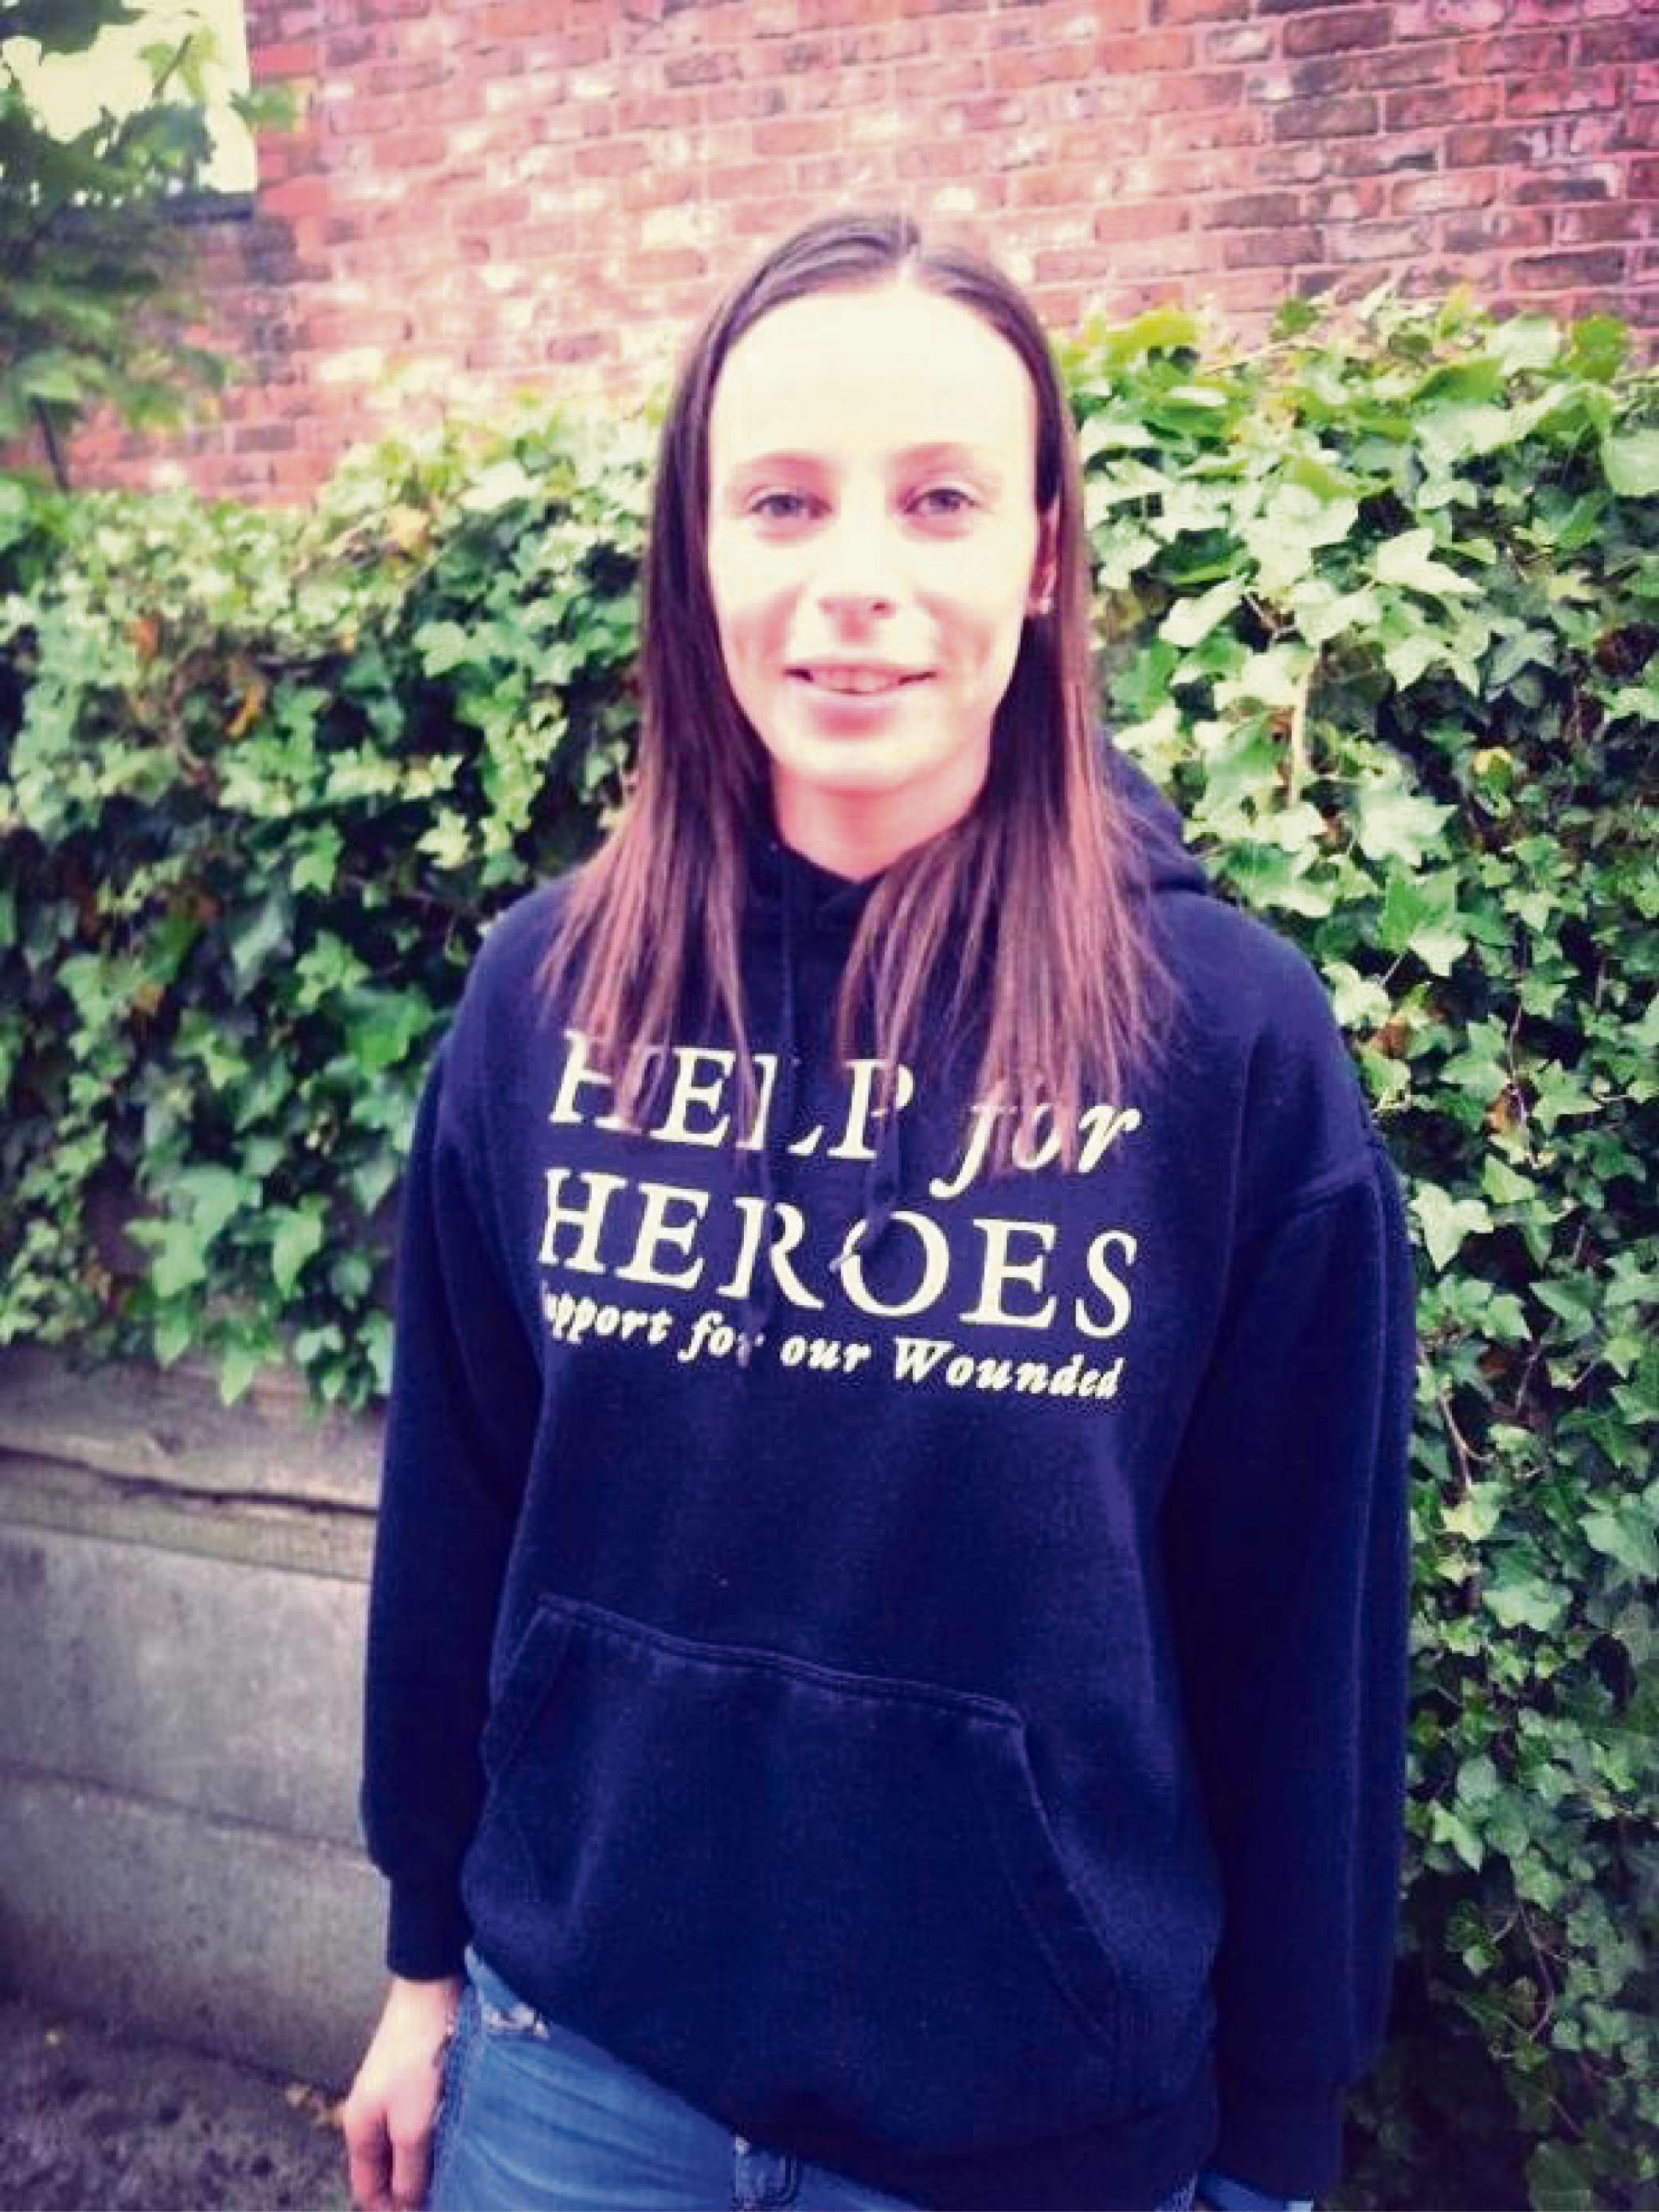 New face for Heroes charity